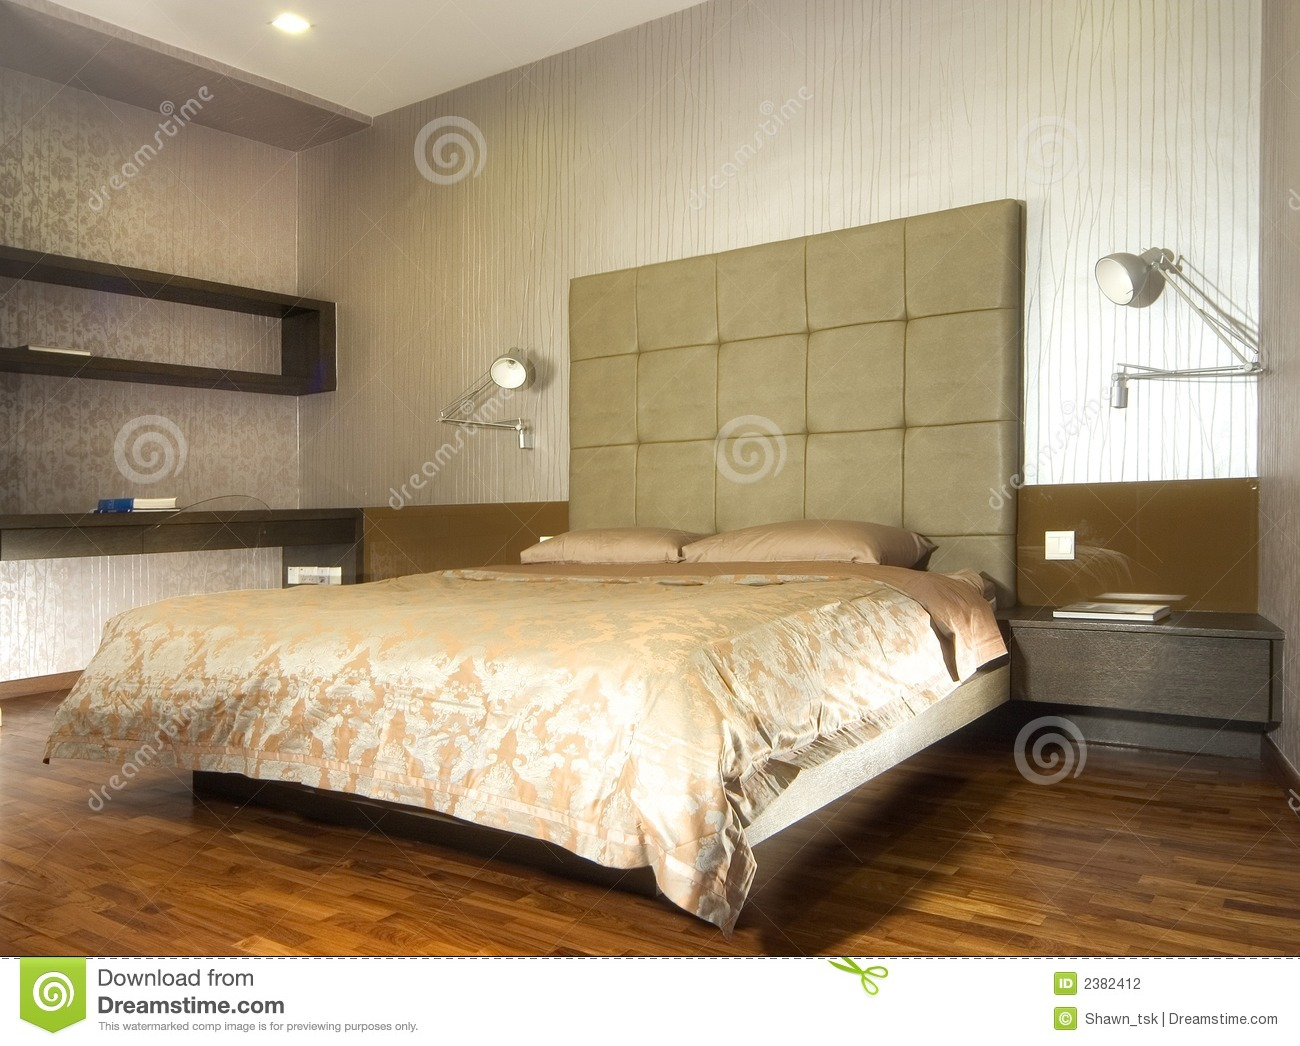 innenarchitektur schlafzimmer stockfotografie bild. Black Bedroom Furniture Sets. Home Design Ideas